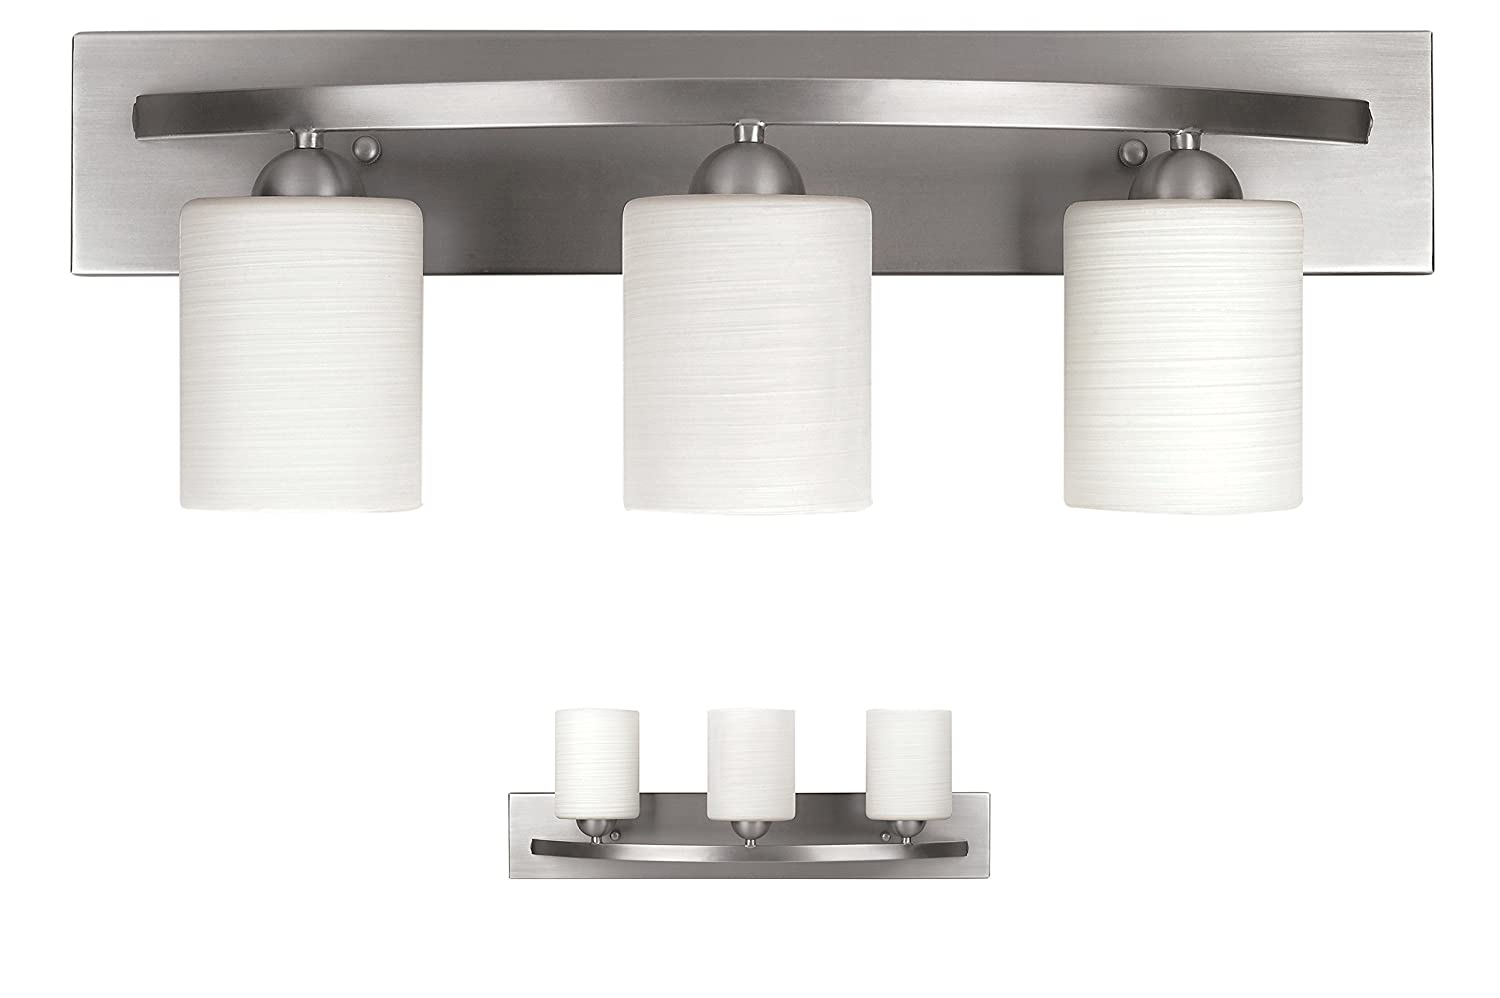 Amazing WholesalePlumbing IVL370A03BPT 3 Bulb Vanity Light Fixture Bath Interior  Lighting, Brushed Nickel     Amazon.com